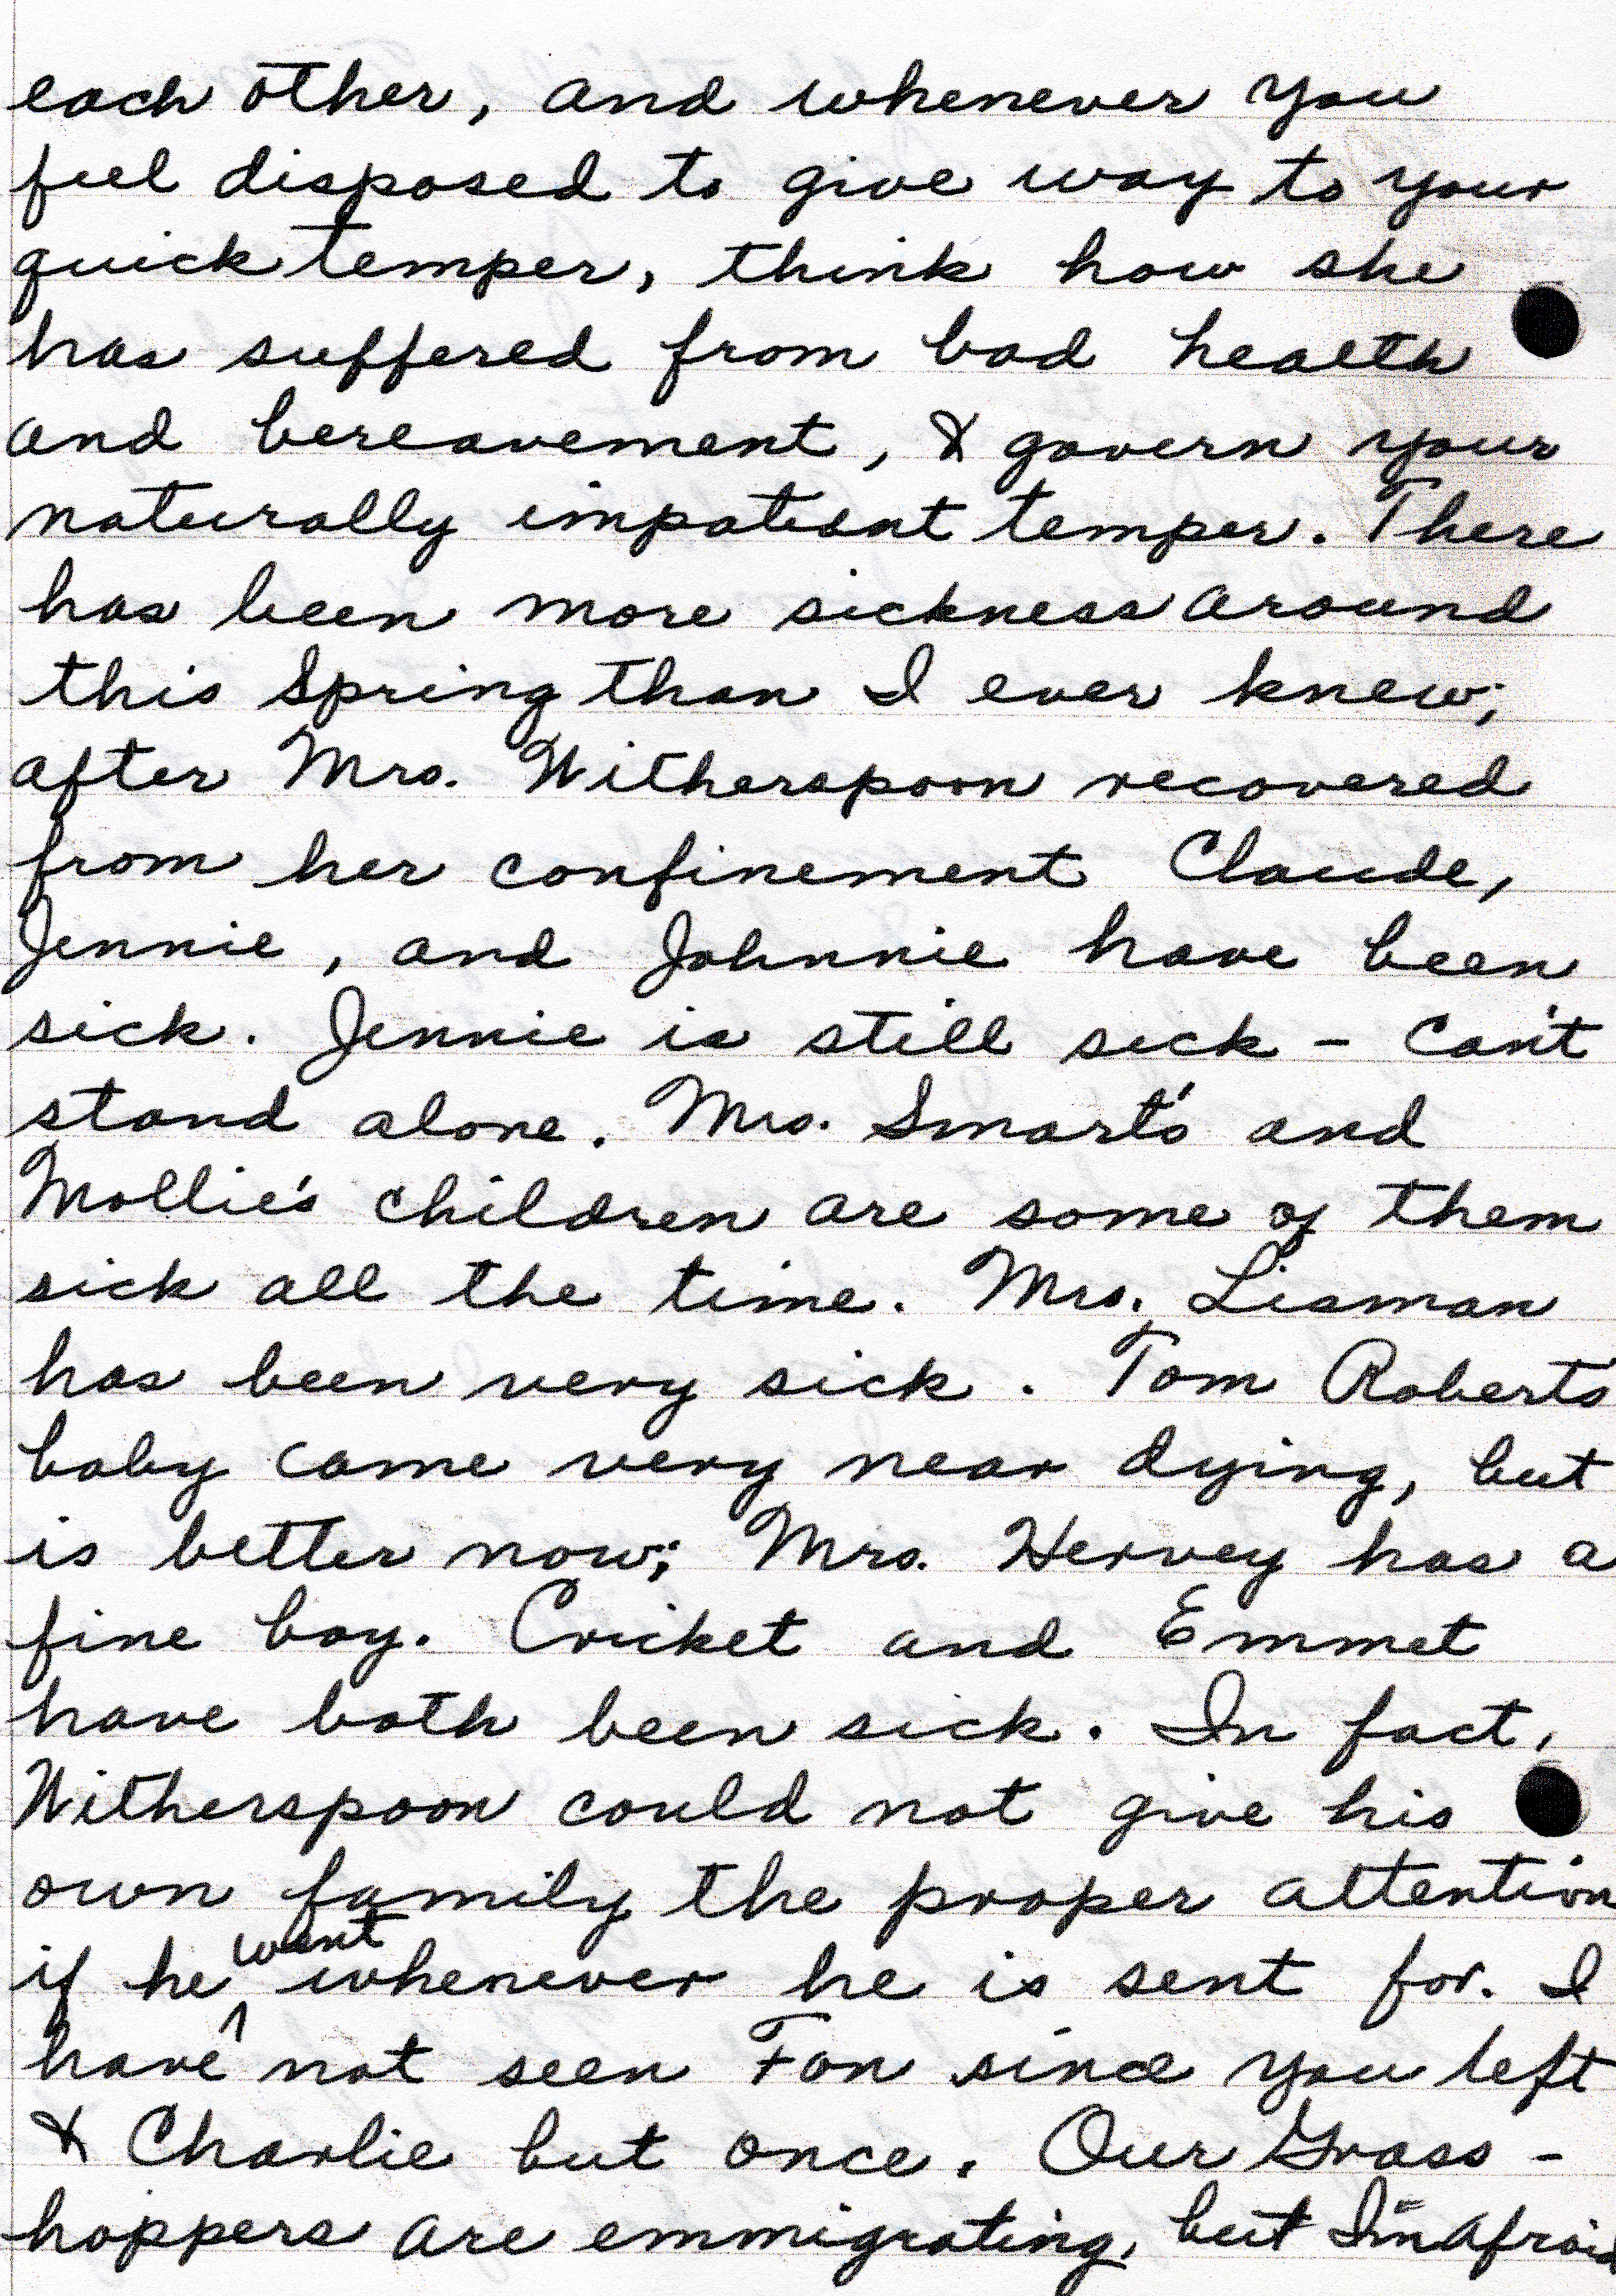 Continuation of letter from mother to daughter